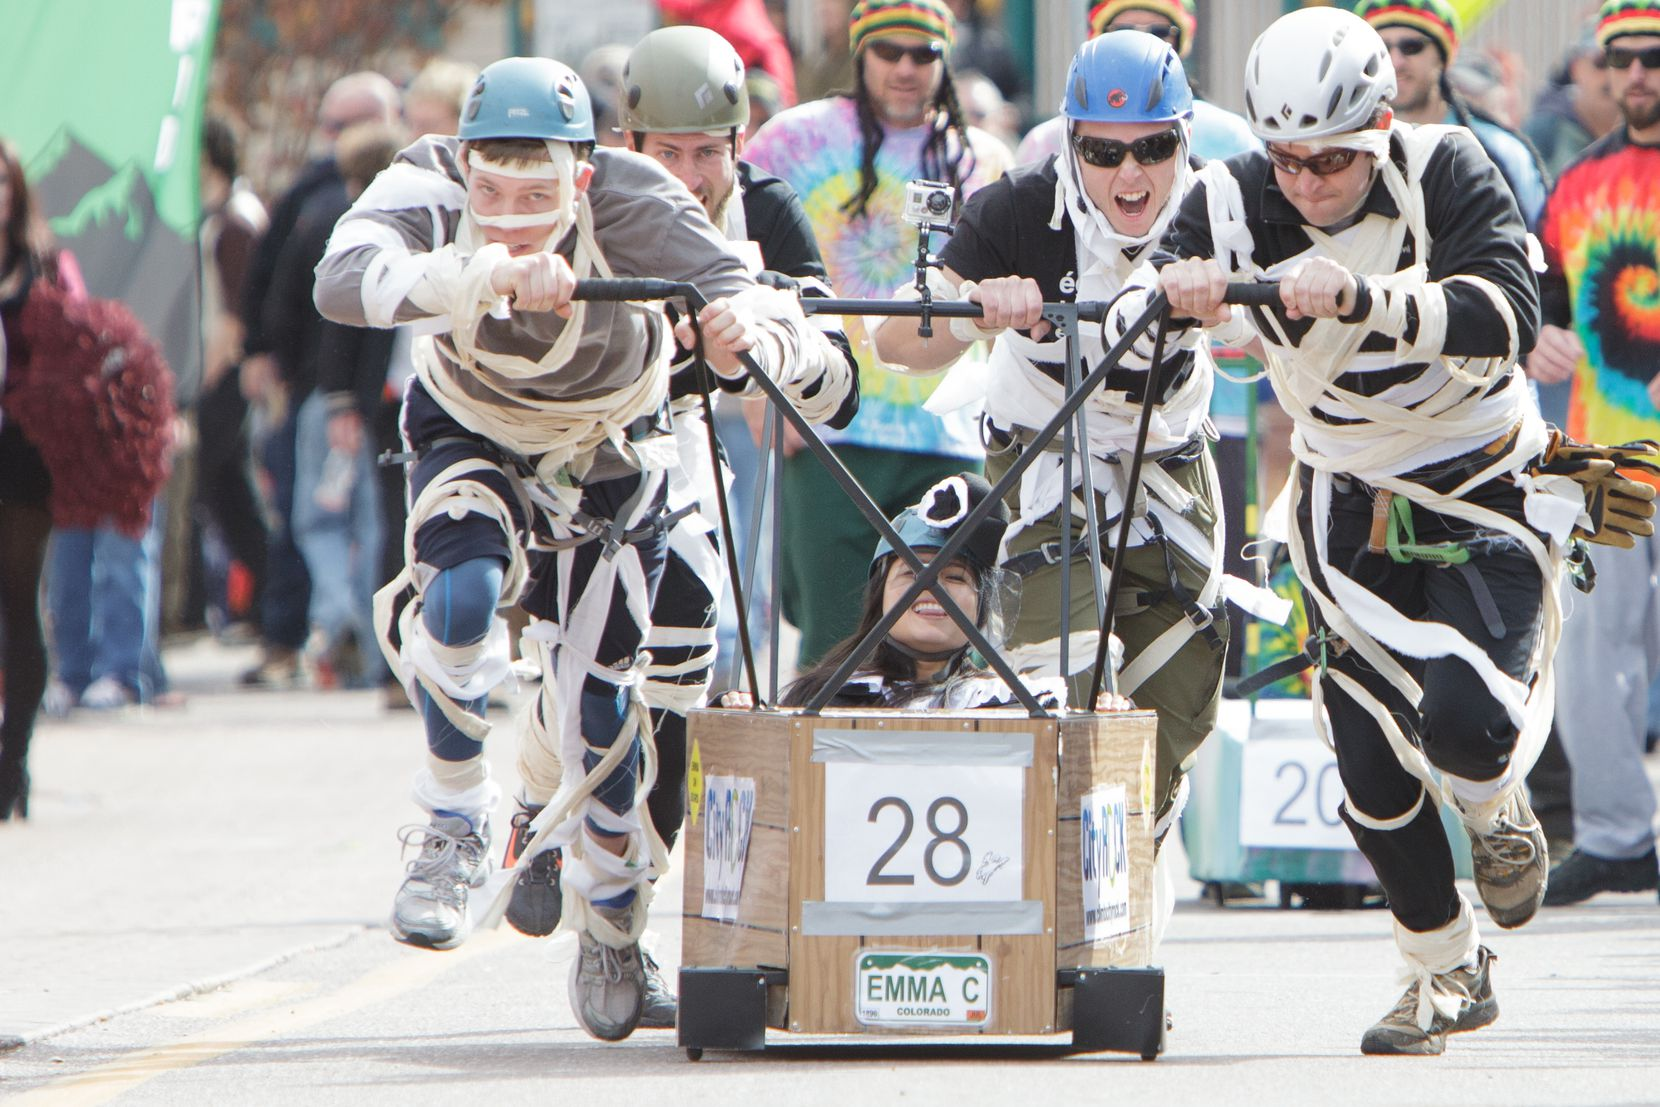 The coffin races marked their 25th anniversary in Manitou Springs, Colo., this fall.